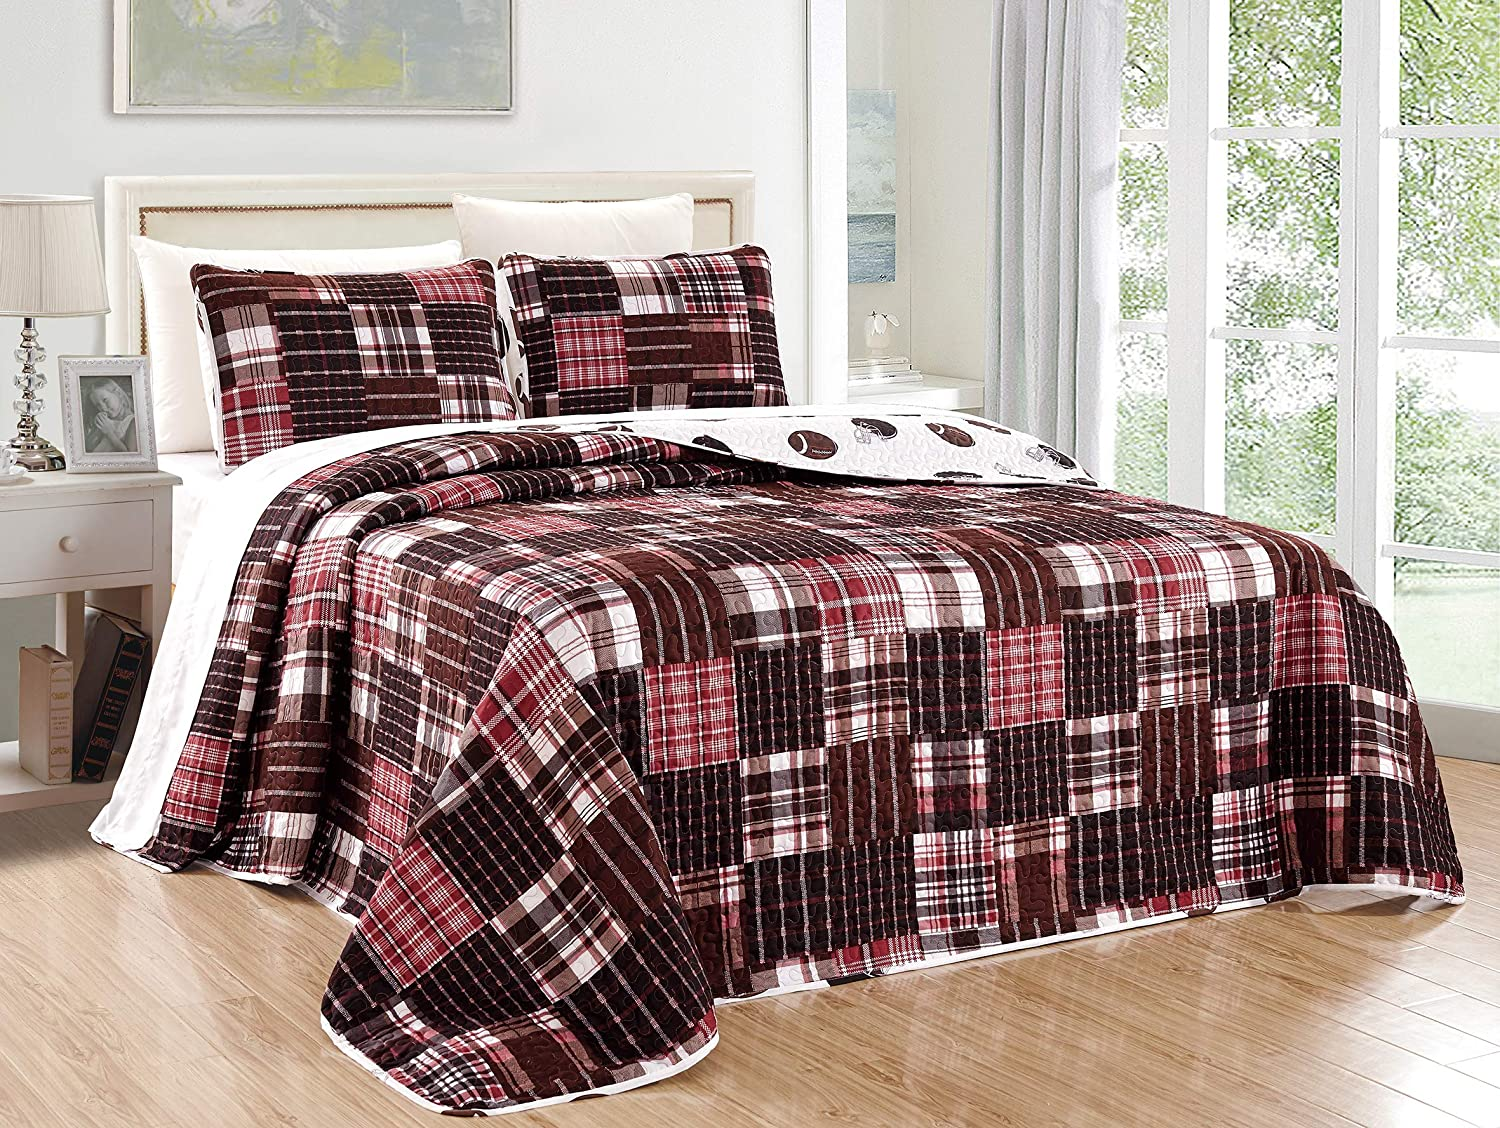 GrandLinen 2 Piece Football Sports Theme Quilt Set - Twin Size Bedspread for Boys, Girls, Guest Room and School Dormitory Coverlet Sets